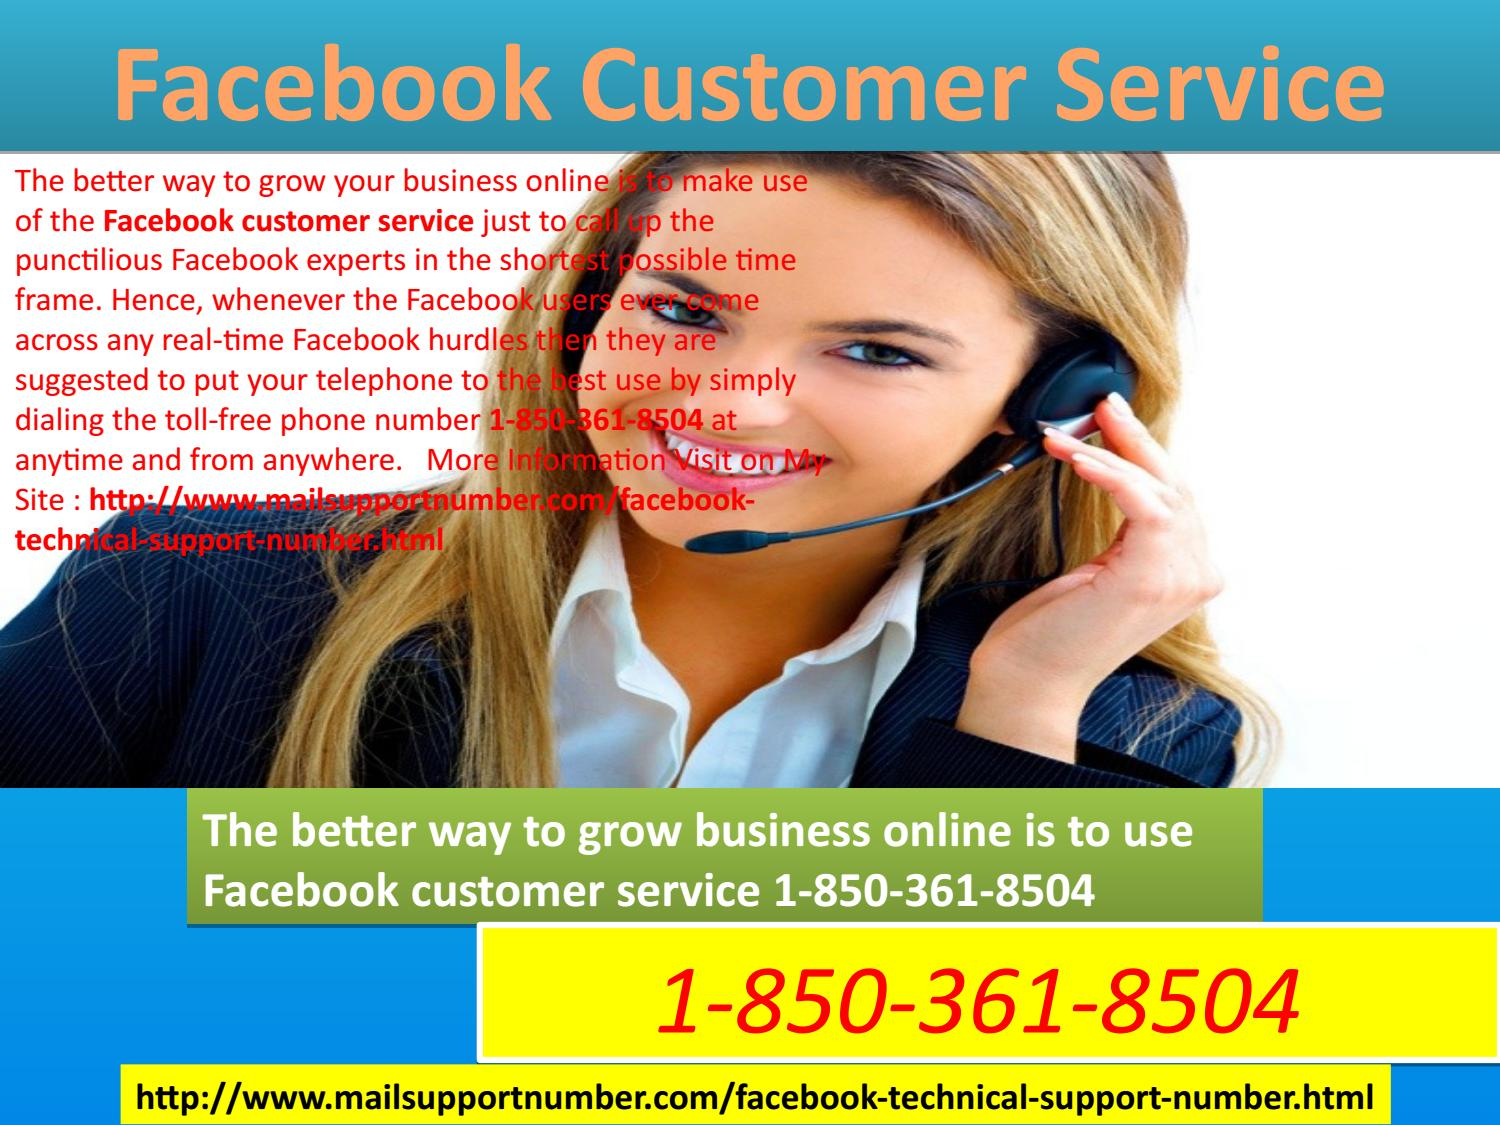 Does Facebook Customer Service 1 850 361 8504 Weed Out